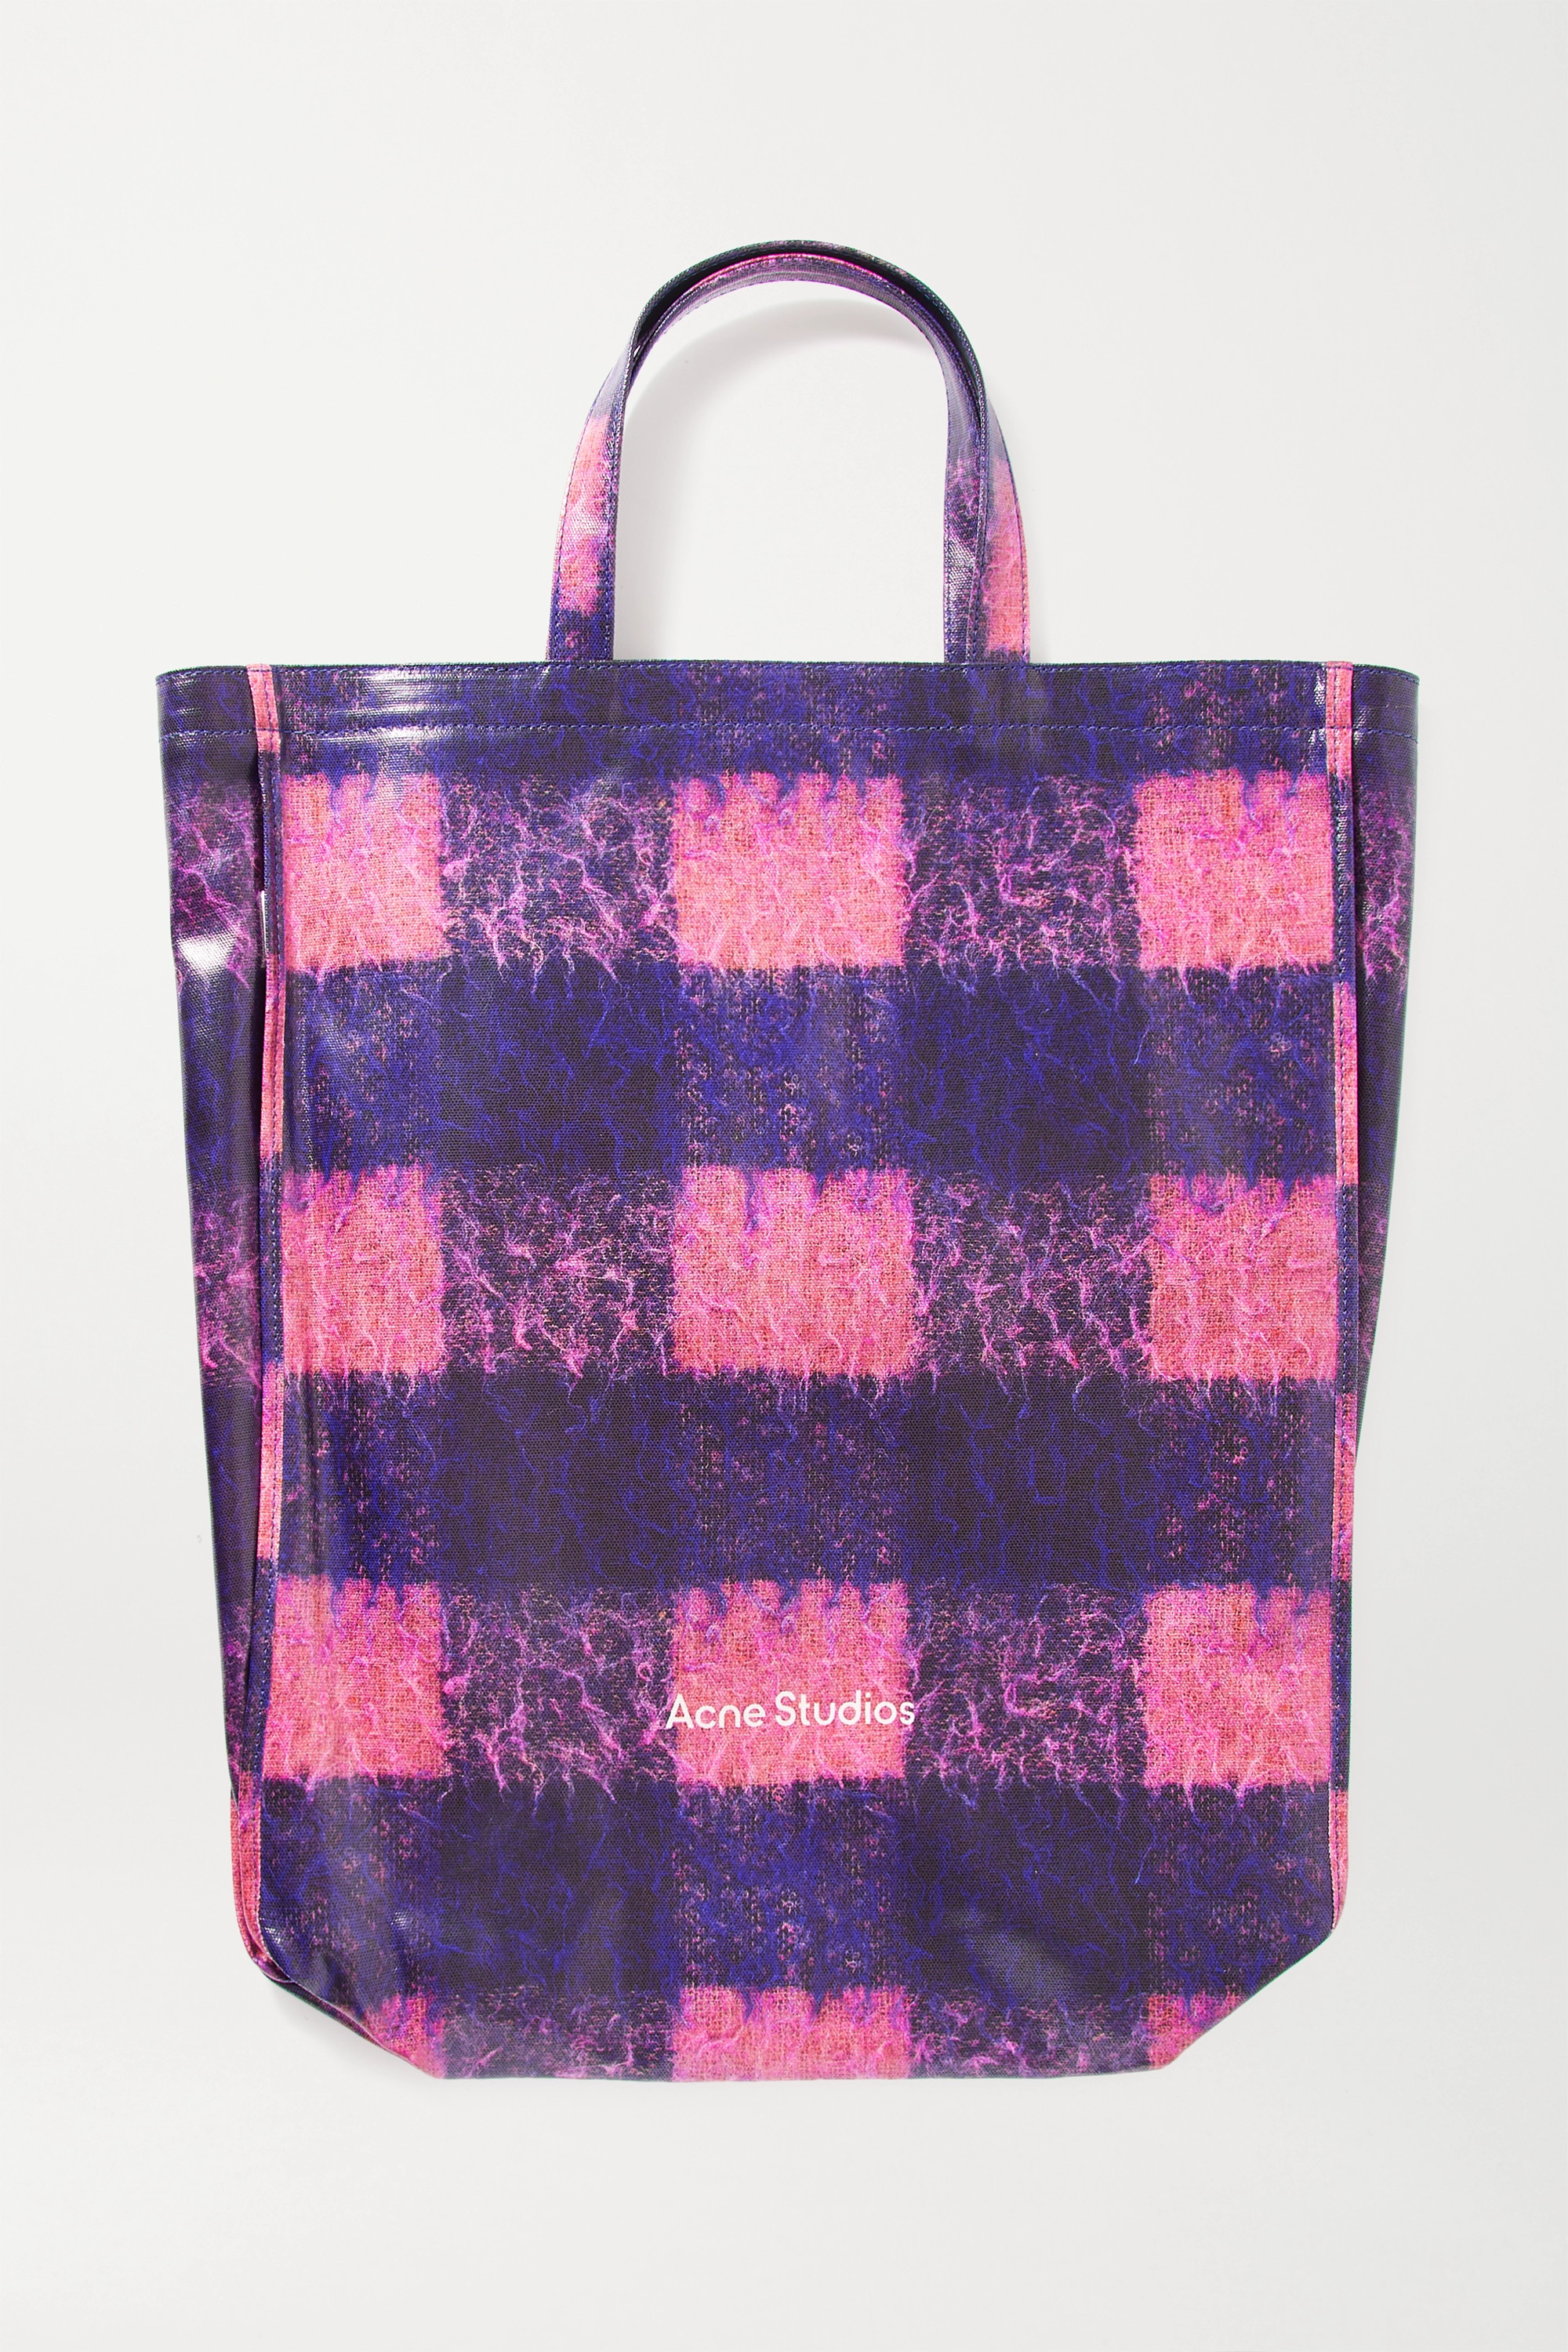 Acne Studios Printed coated-cotton tote